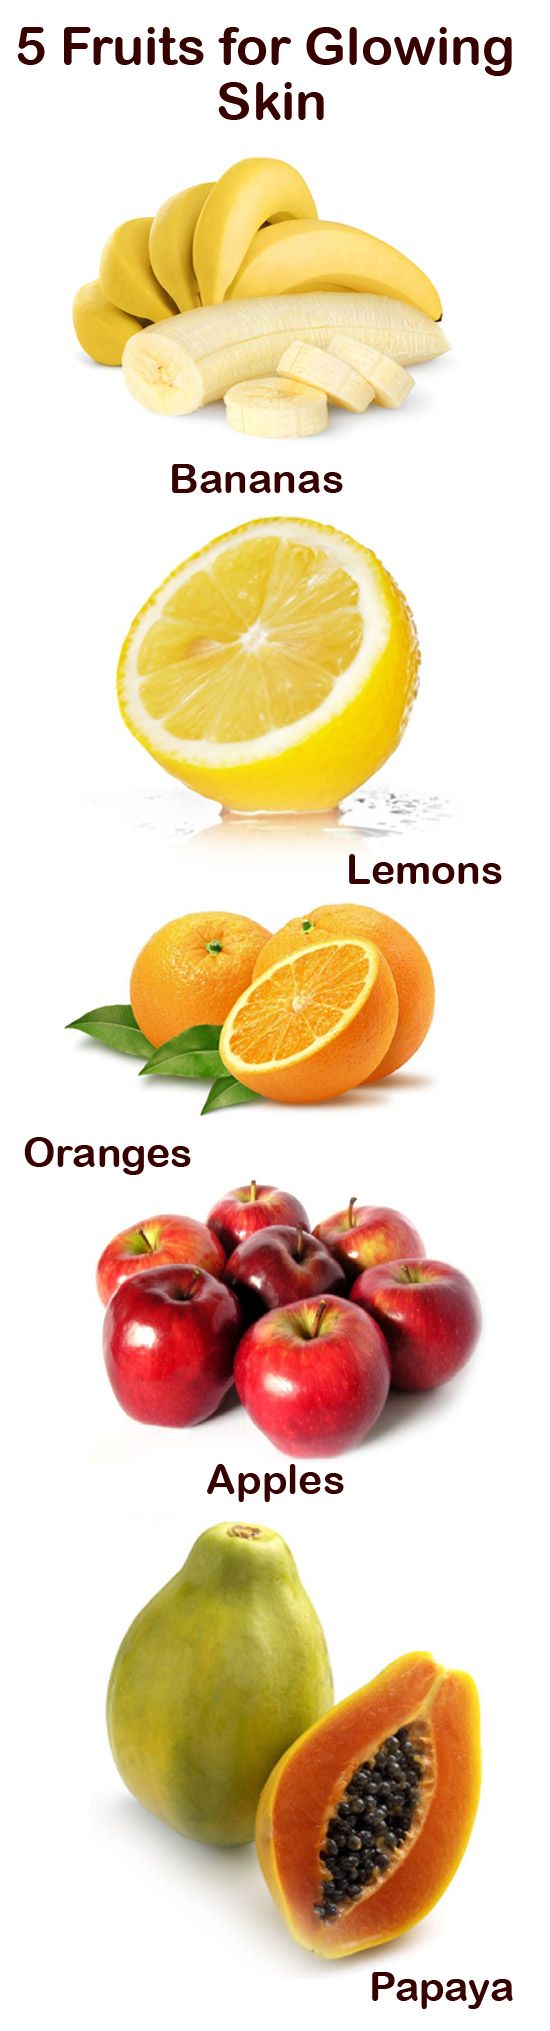 fruits for healthy glowing skin fruit girl